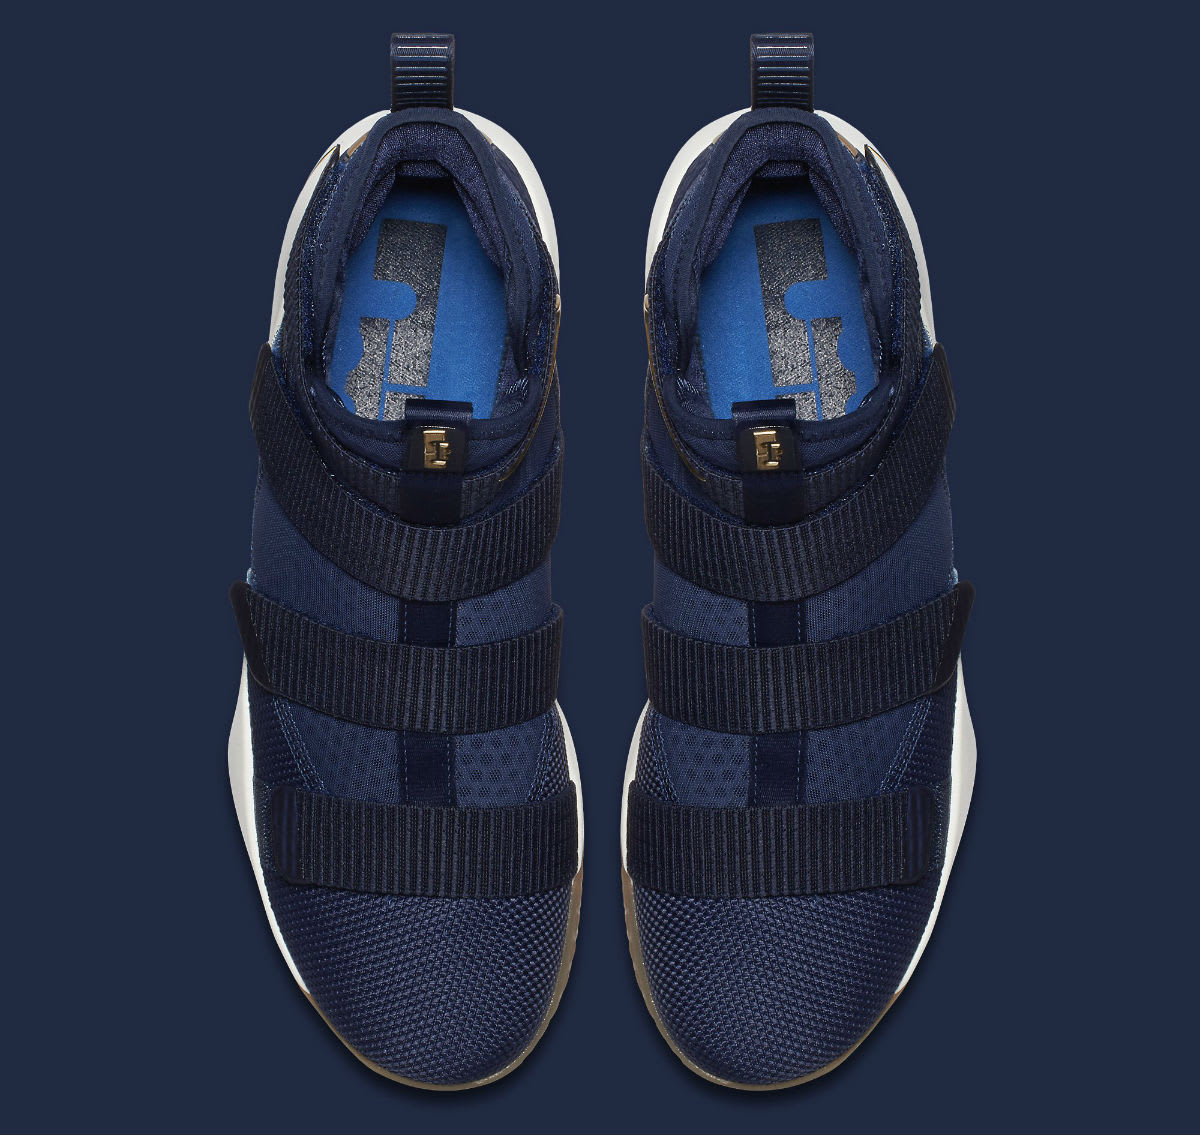 Nike LeBron Soldier 11 Cavs Navy Release Date Top 897644-402